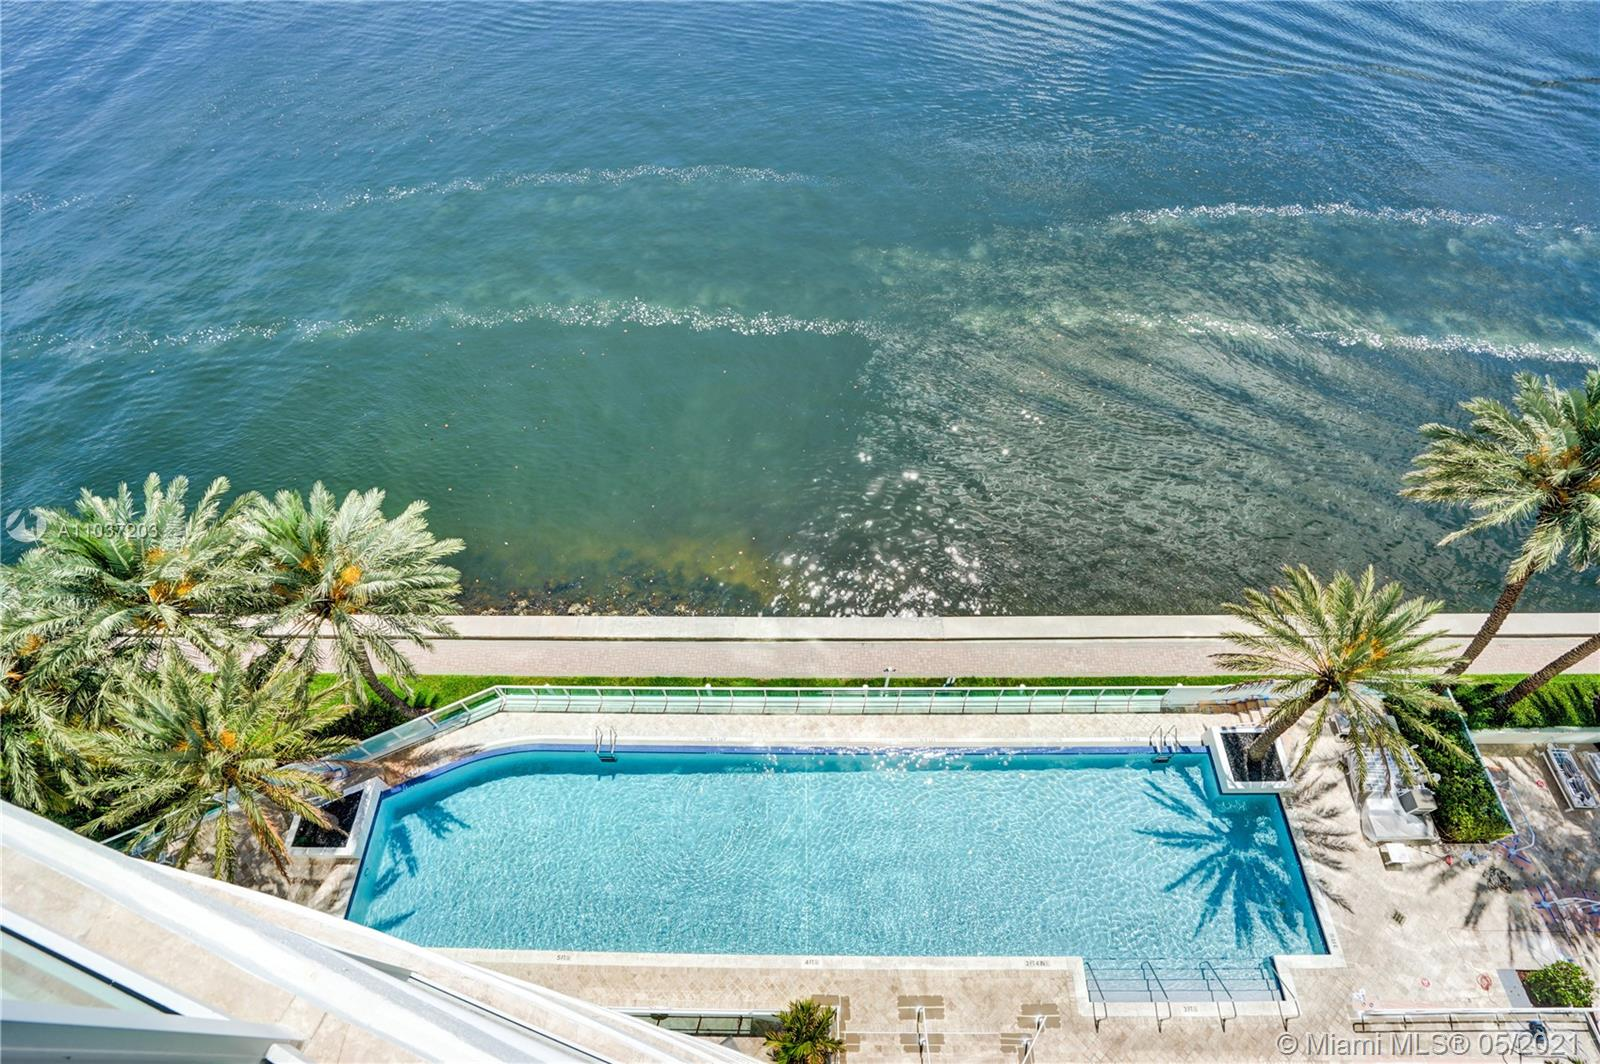 Photo of 20201 Country Club Dr #1006, Aventura, Florida, 33180 - Totally unobstructed views.